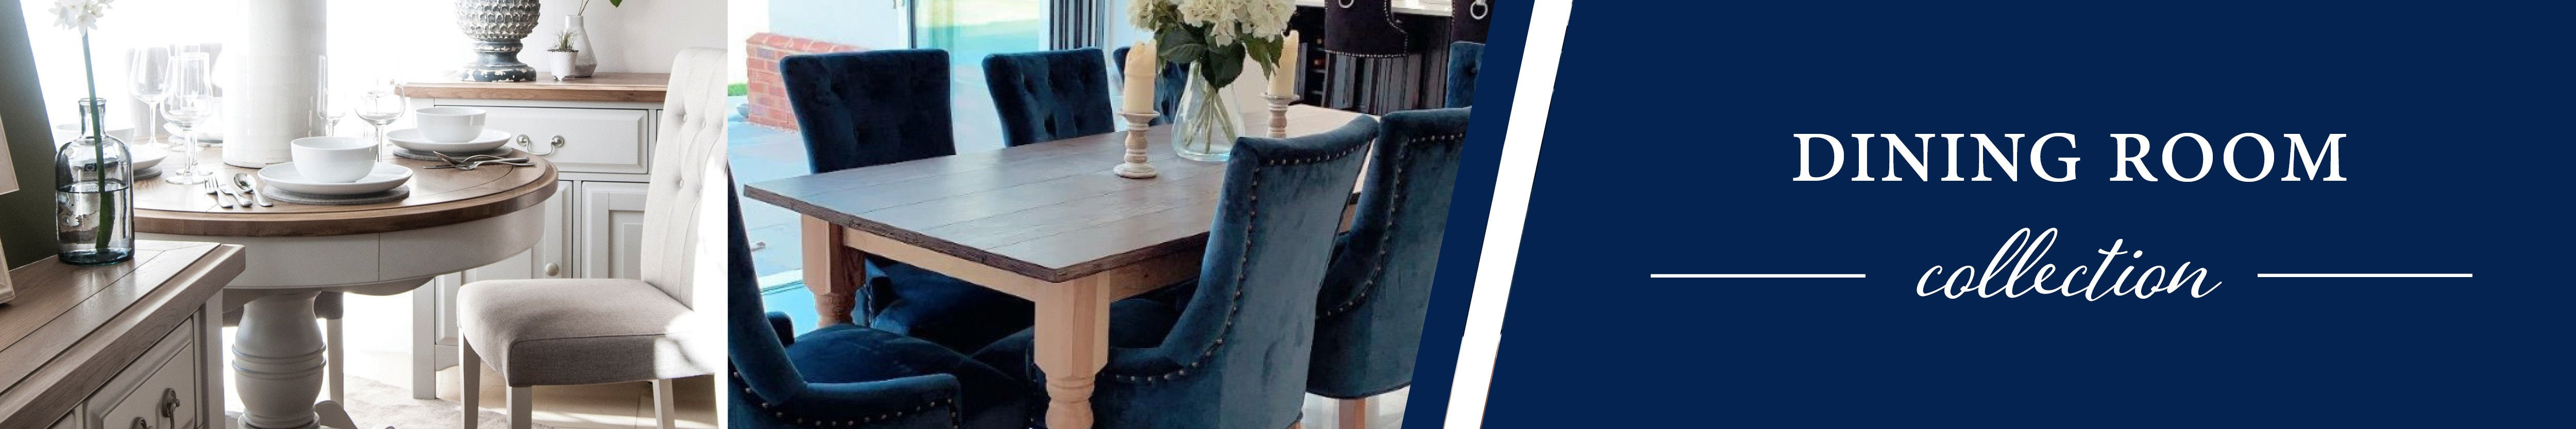 HomePlus Furniture | Dining Room Collection